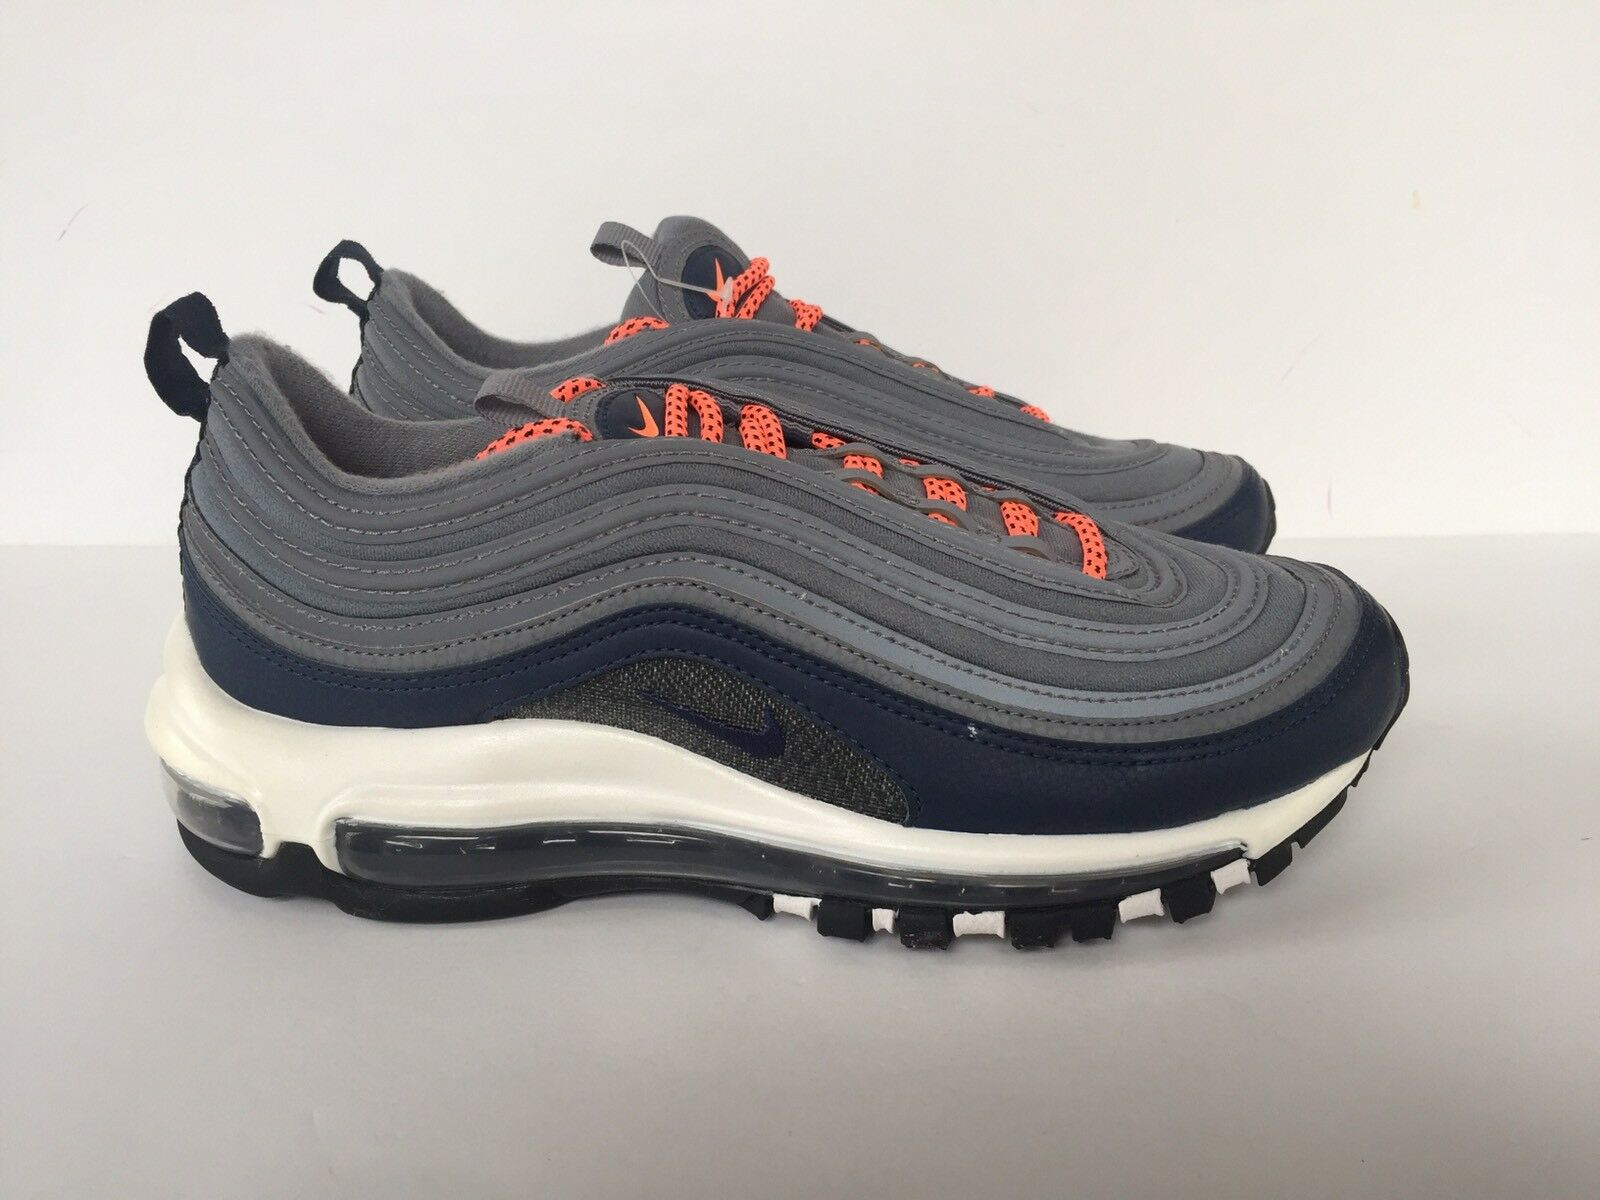 NEW  NIKE AIR MAX 97 SAMPLE DARK Gris 921733-002 Femme Taille 7 NEW